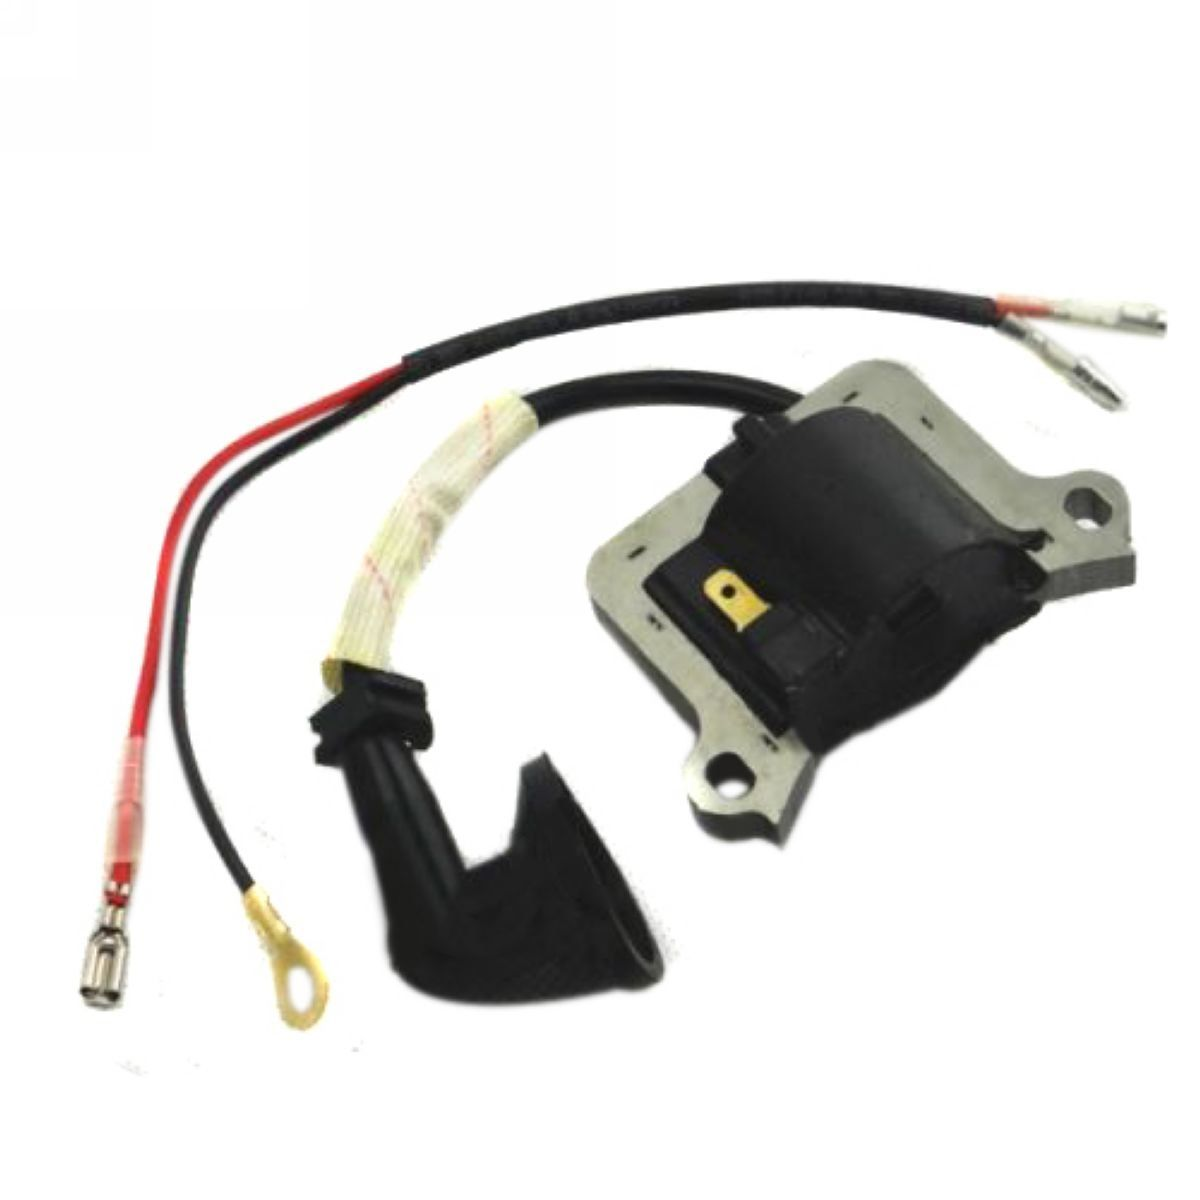 New Ignition Coil For 2 Stroke Engine Strimmer Chainsaw Brush Cutter Lawn Mower Parts Mayitr Garden Tools